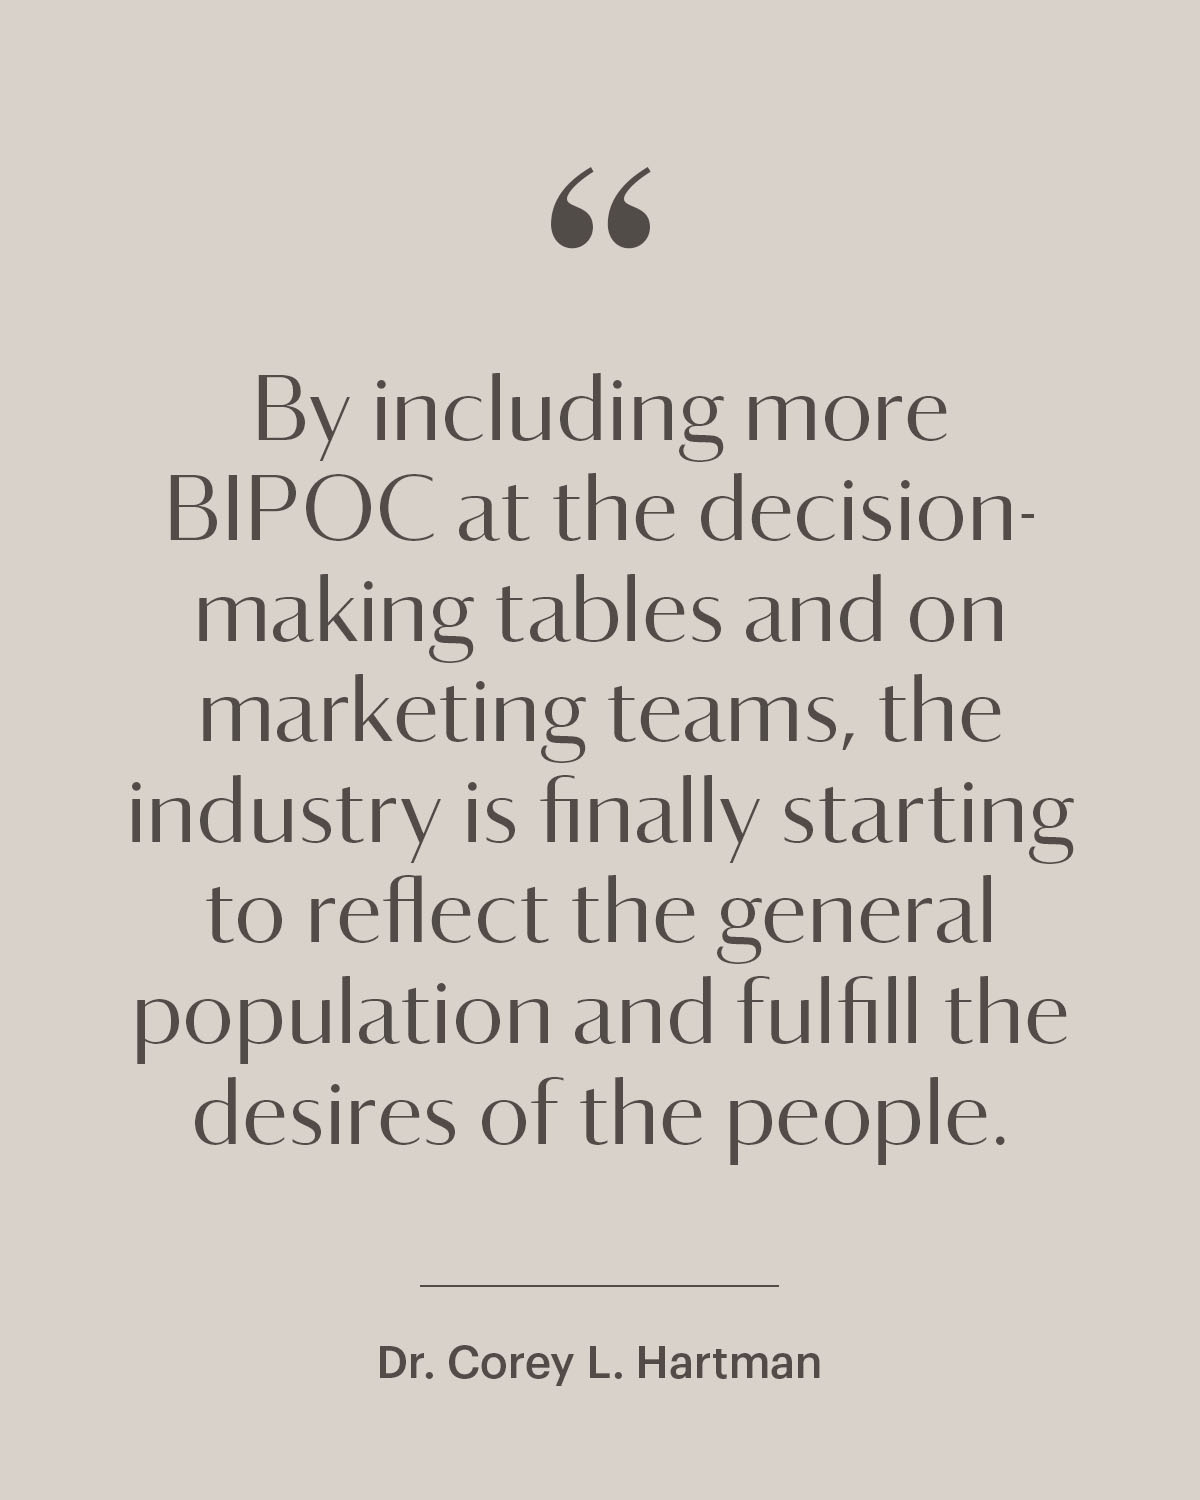 """pull quote from dr cory hartman (""""By including more BIPOC at the decision-making tables and on marketing teams, the industry is finally starting to reflect the general population and fulfill the desires of the people"""")"""